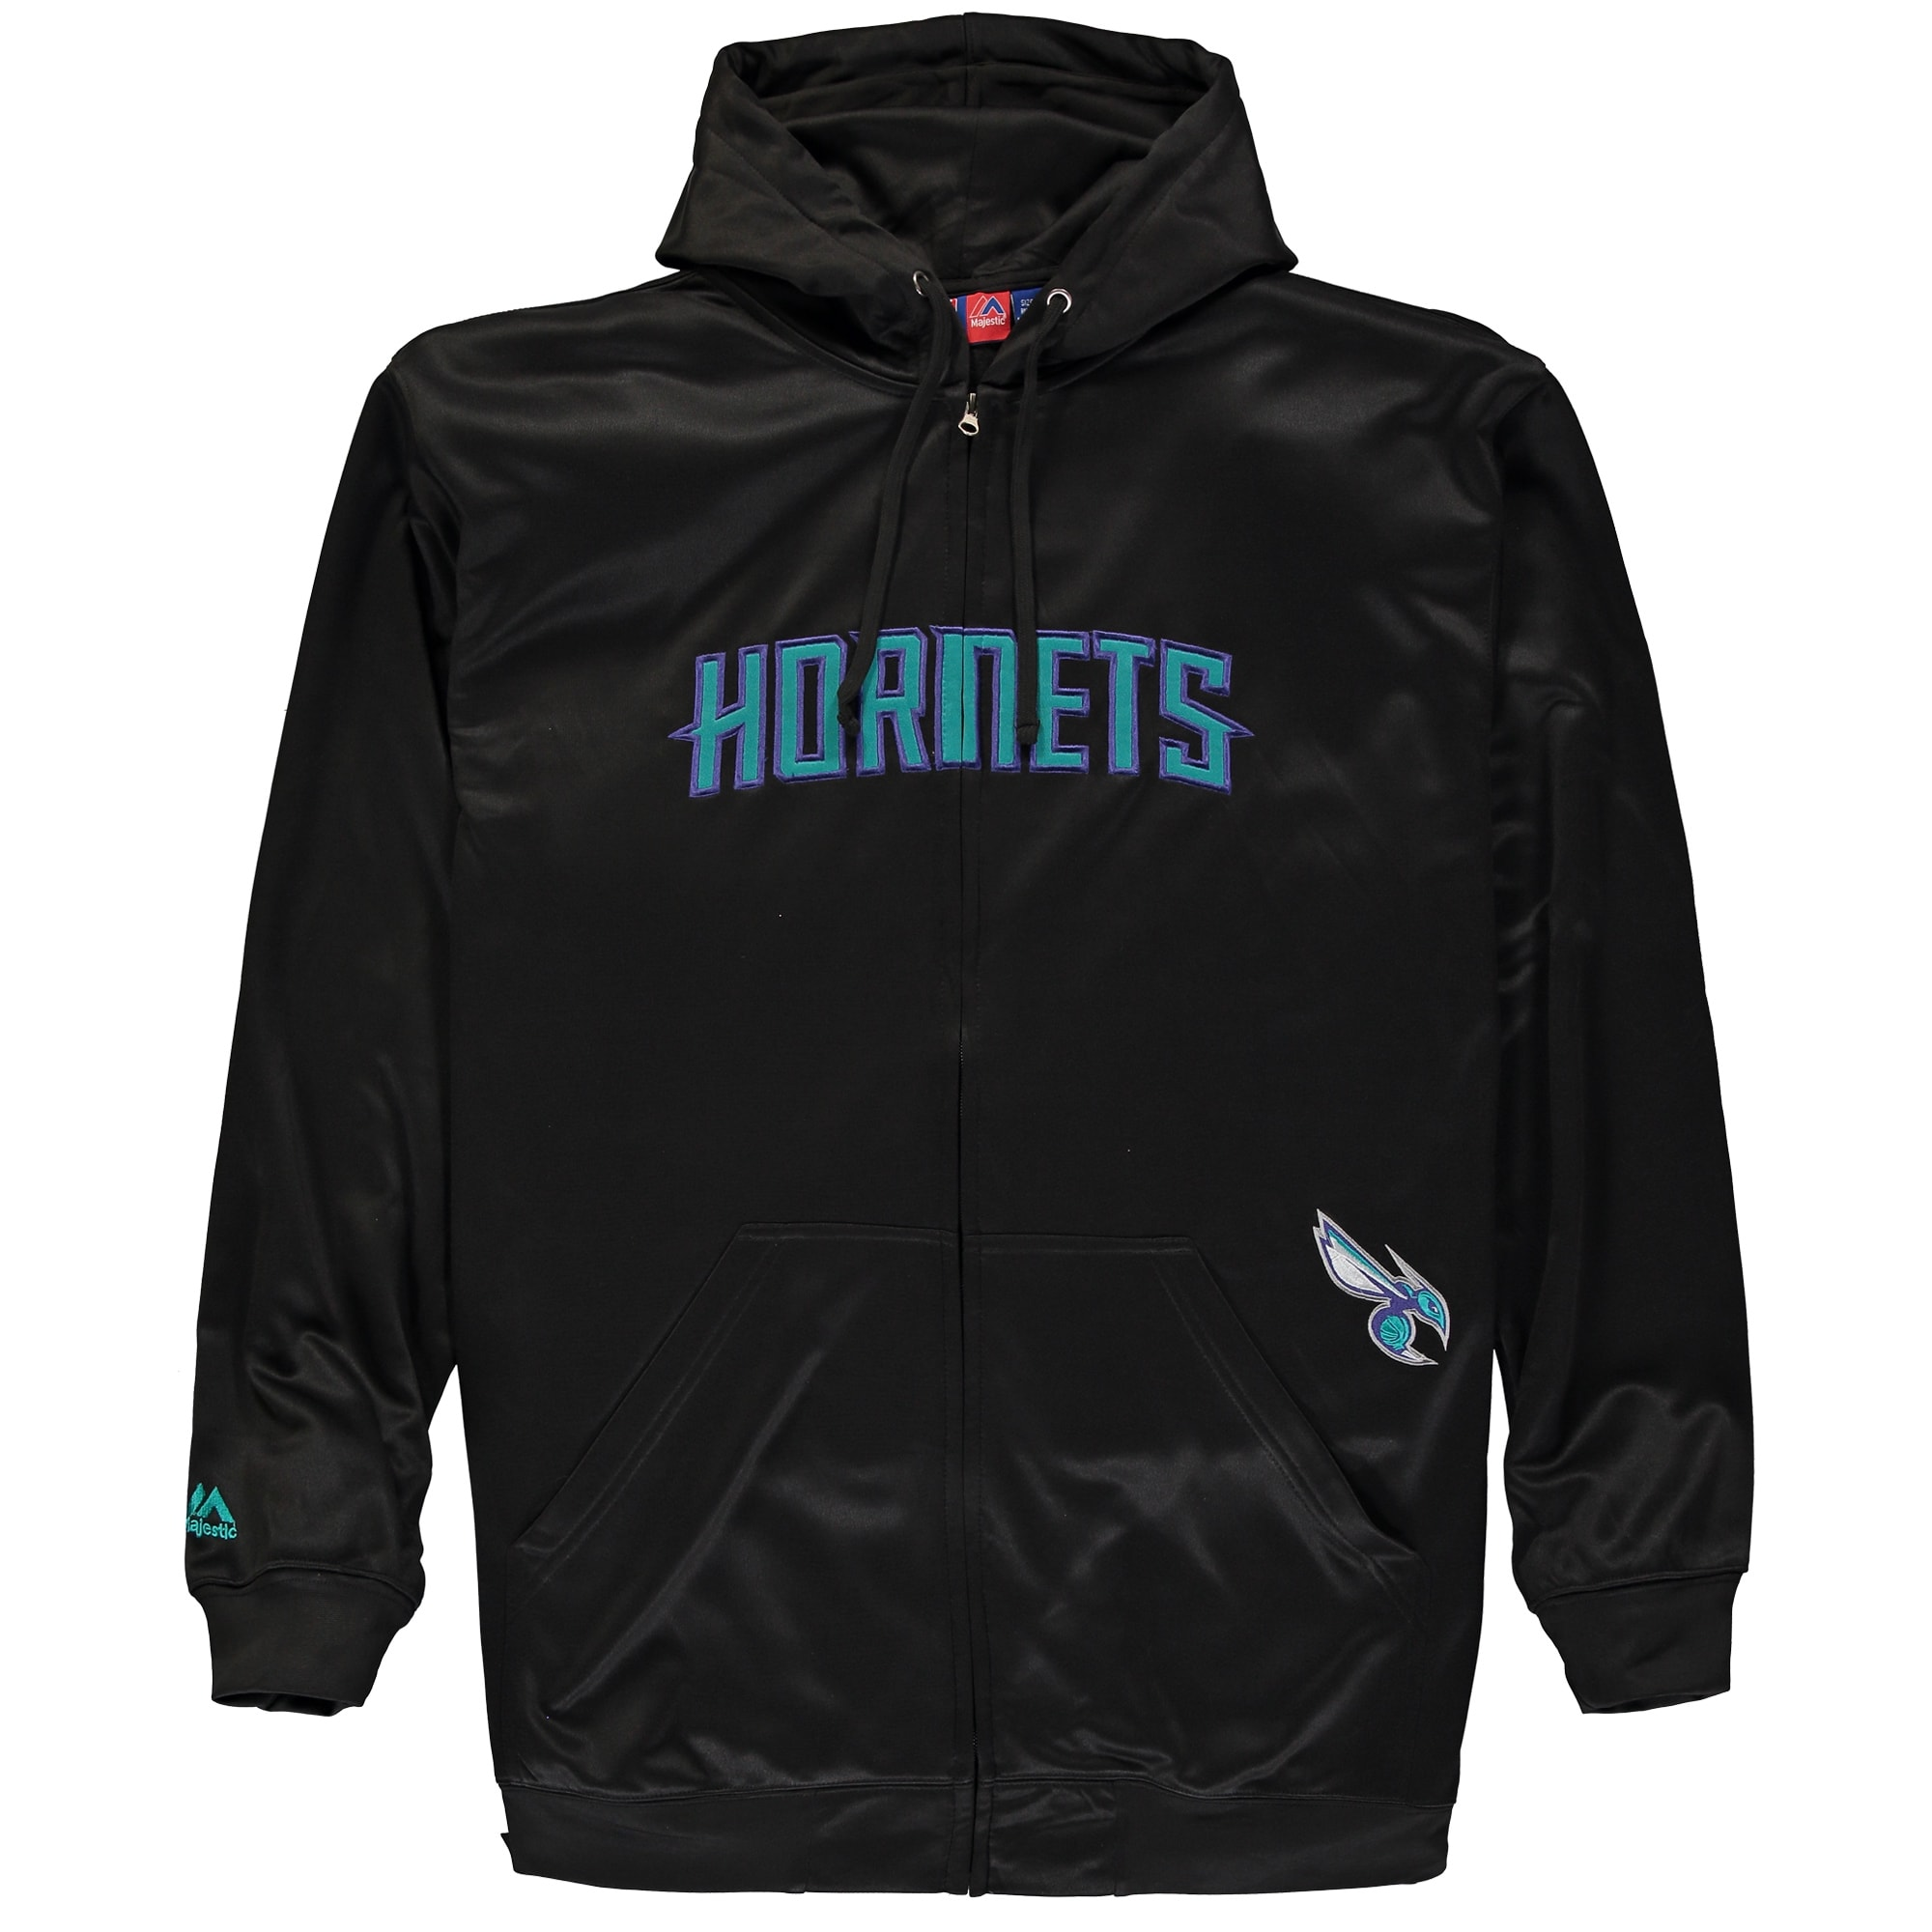 Charlotte Hornets Majestic Big & Tall Delay Thermabase Full-Zip Hoodie - Black